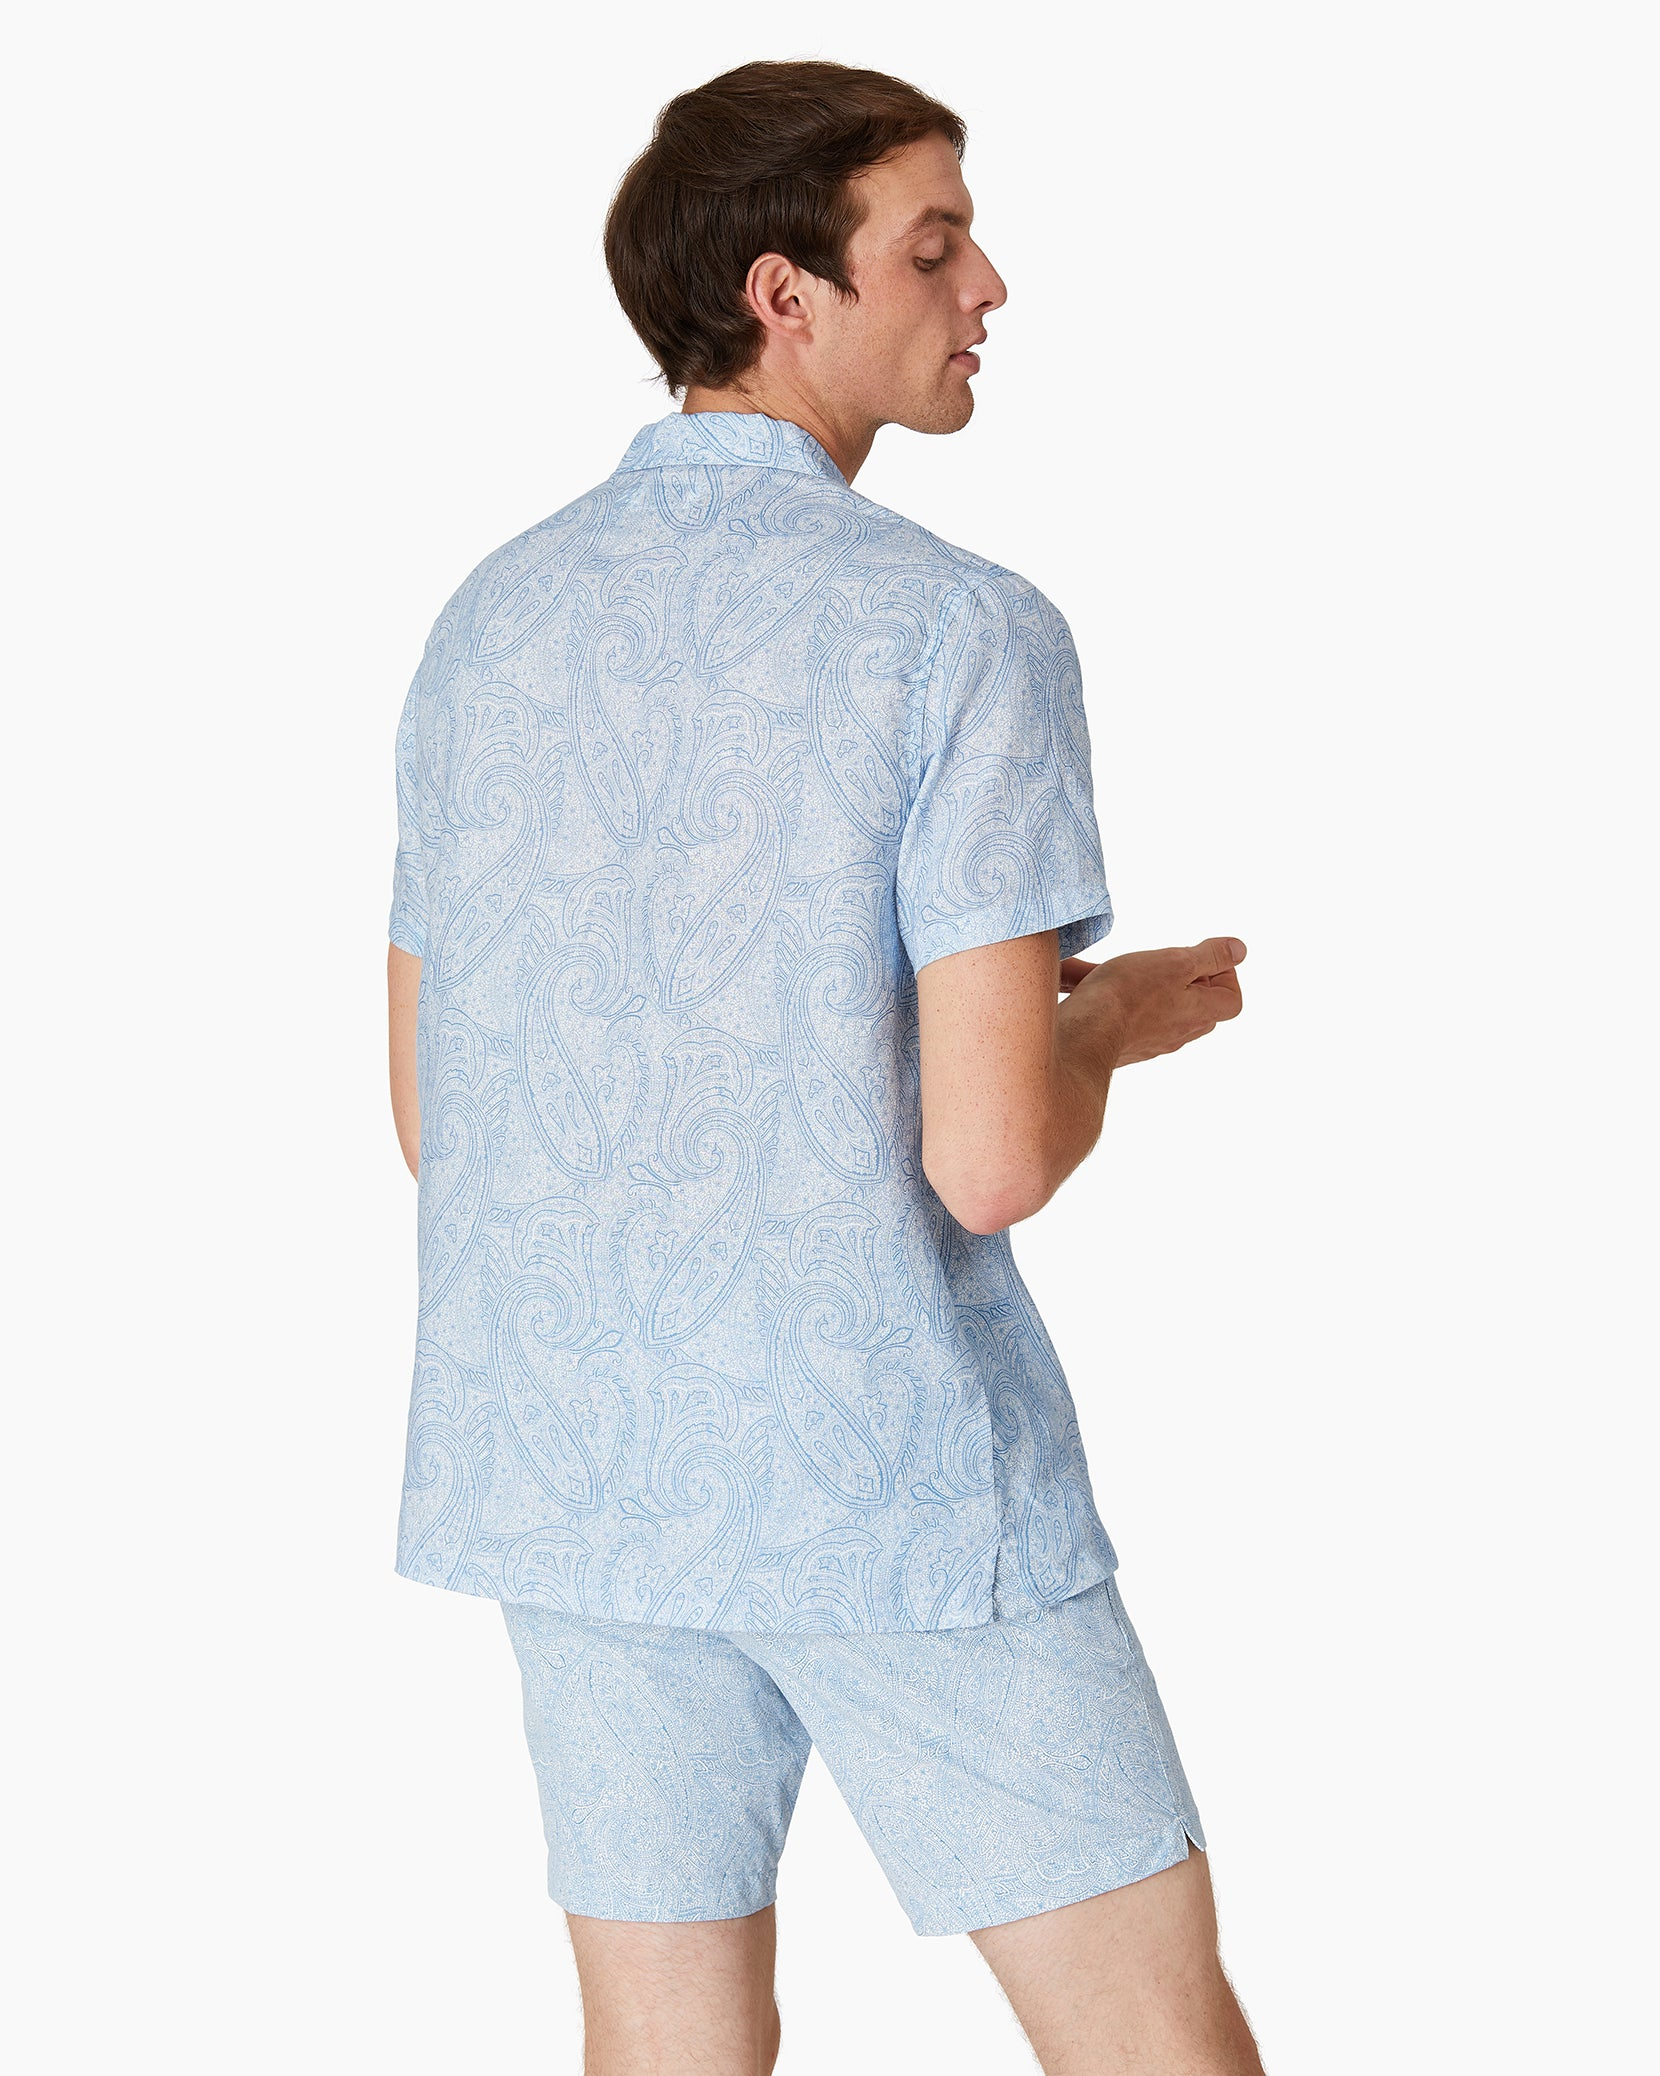 Paisley Linen Camp Shirt in Parisian Blue - 4 - Onia